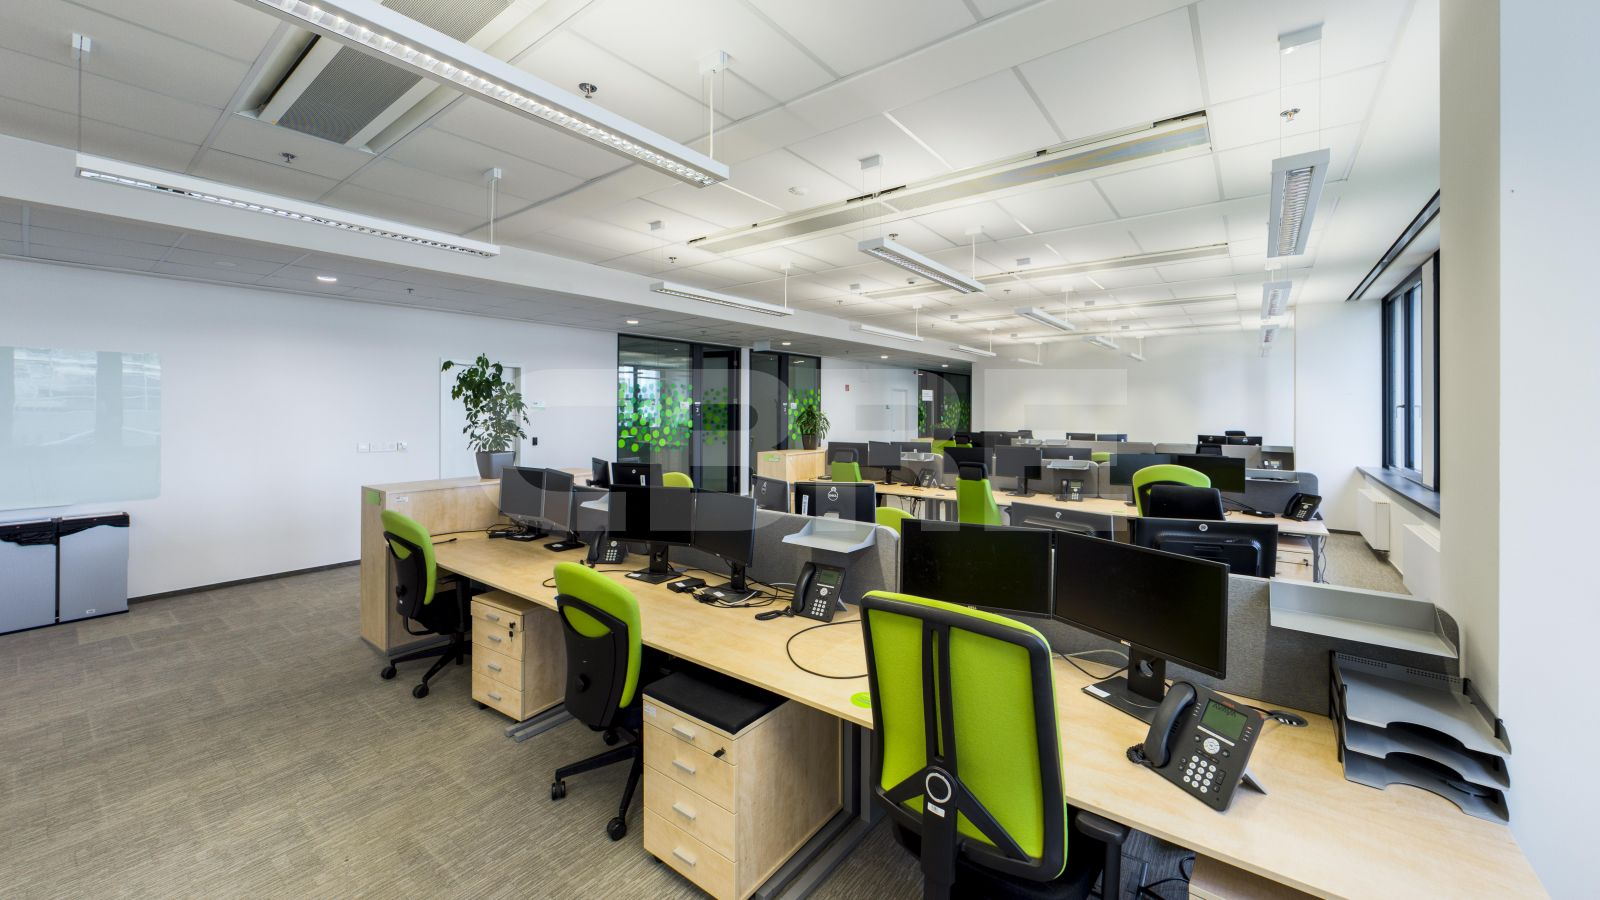 Panorama Business II - Sublease or Surrender, Bratislava - Staré Mesto | Offices for rent by CBRE | 3